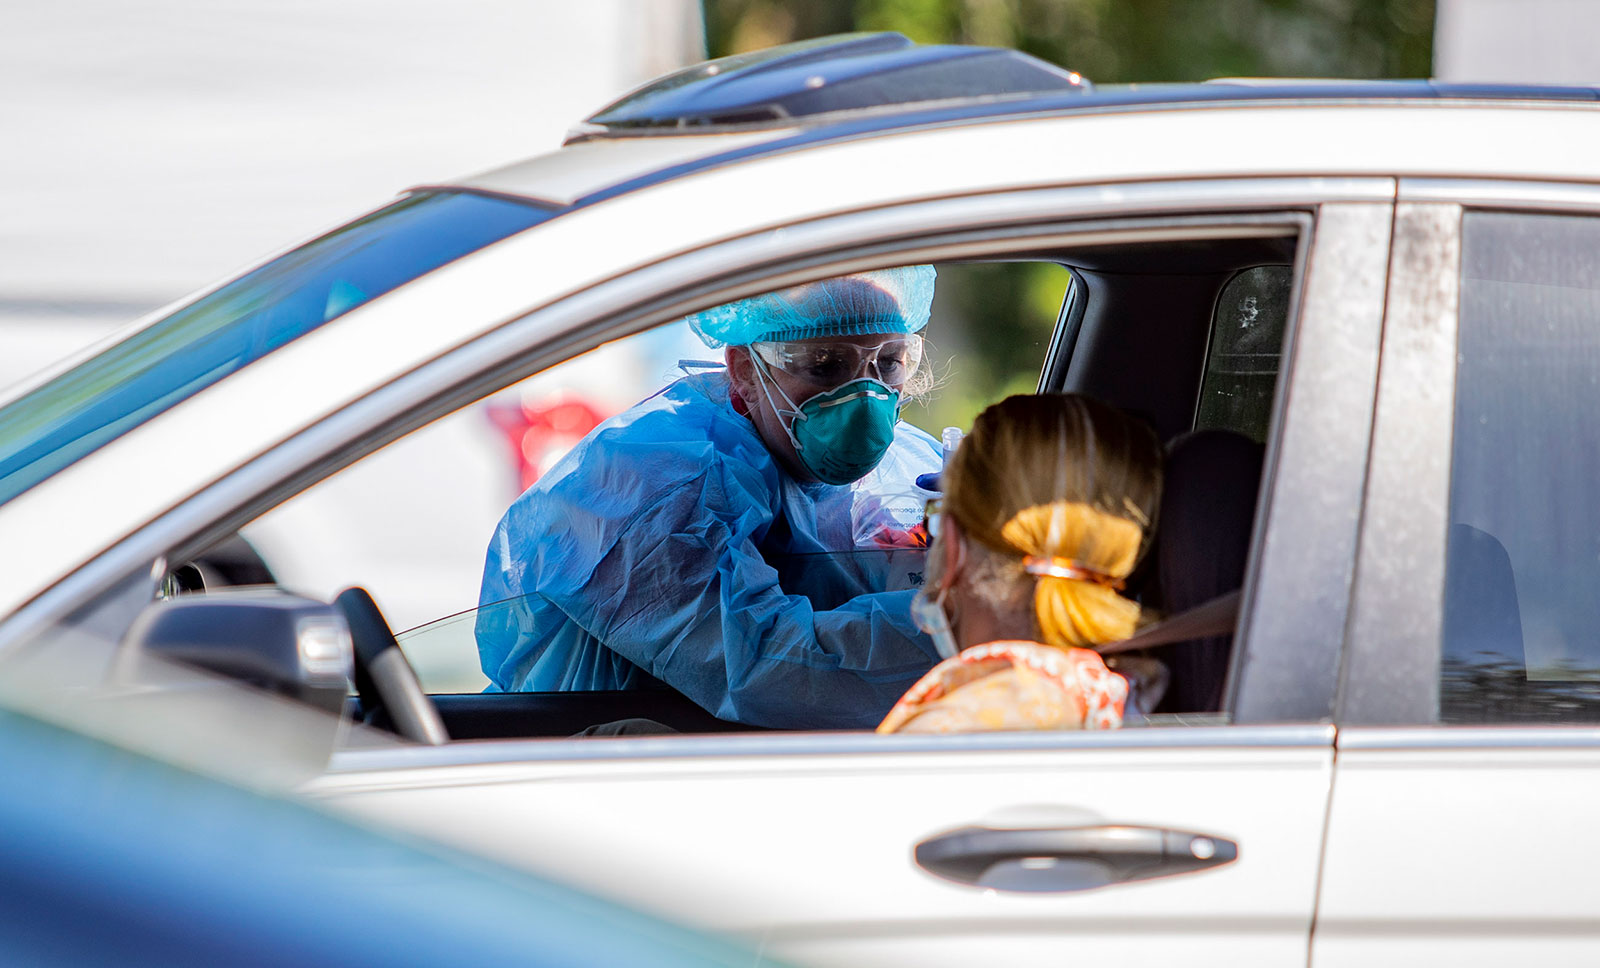 A healthcare worker administers a coronavirus test at a drive-thru testing center in Myrtle Beach, South Carolina, on July 17.